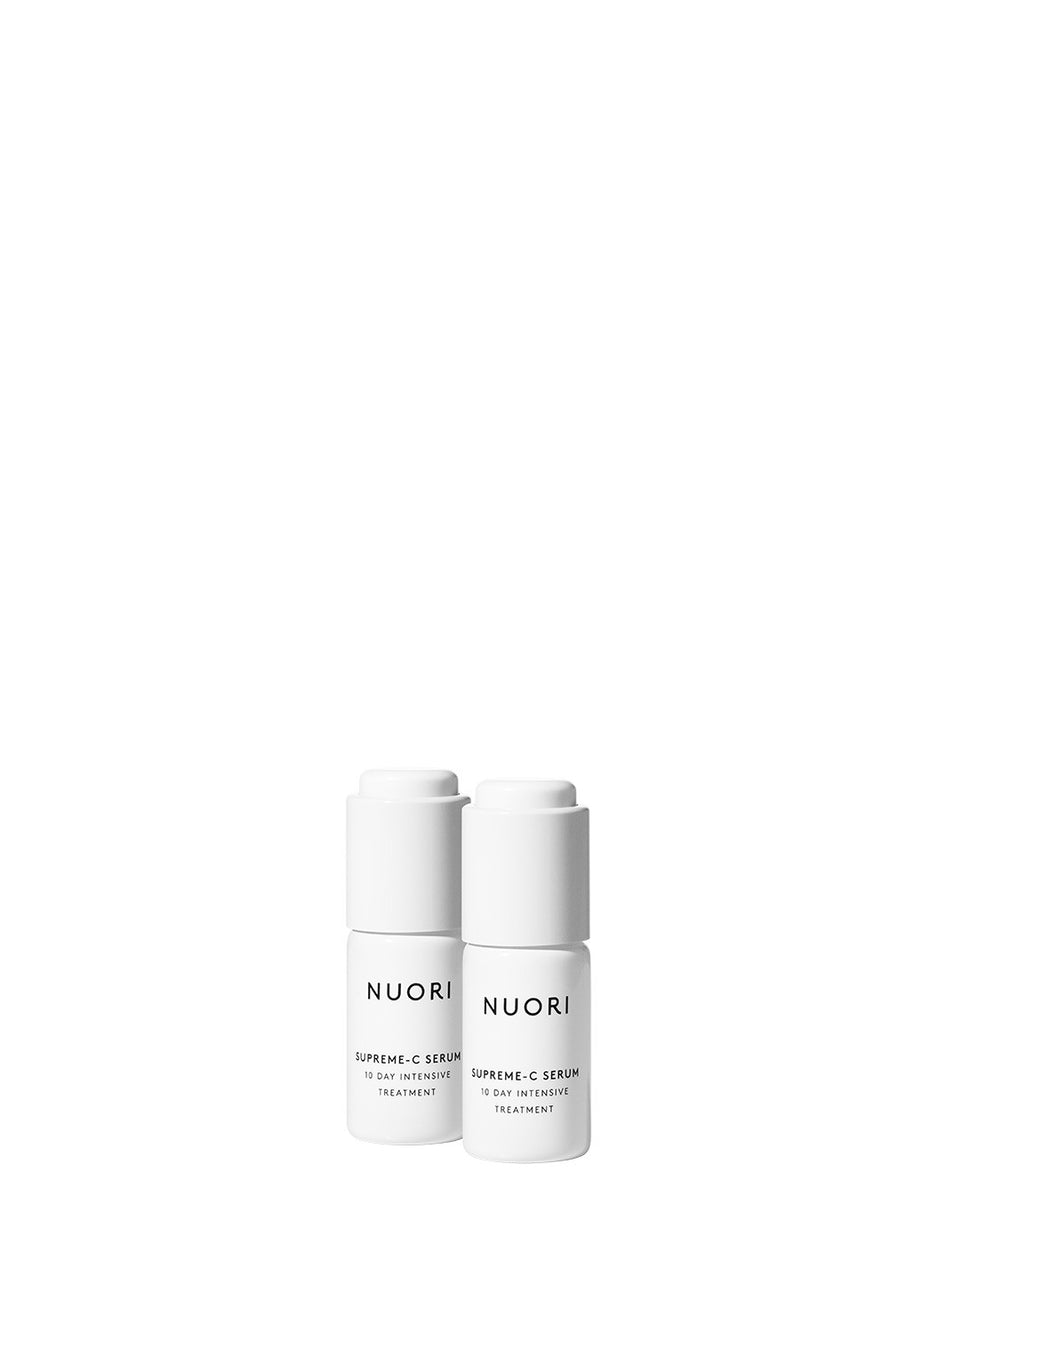 NUORI Supreme-C Serum Treatment 2x10ml